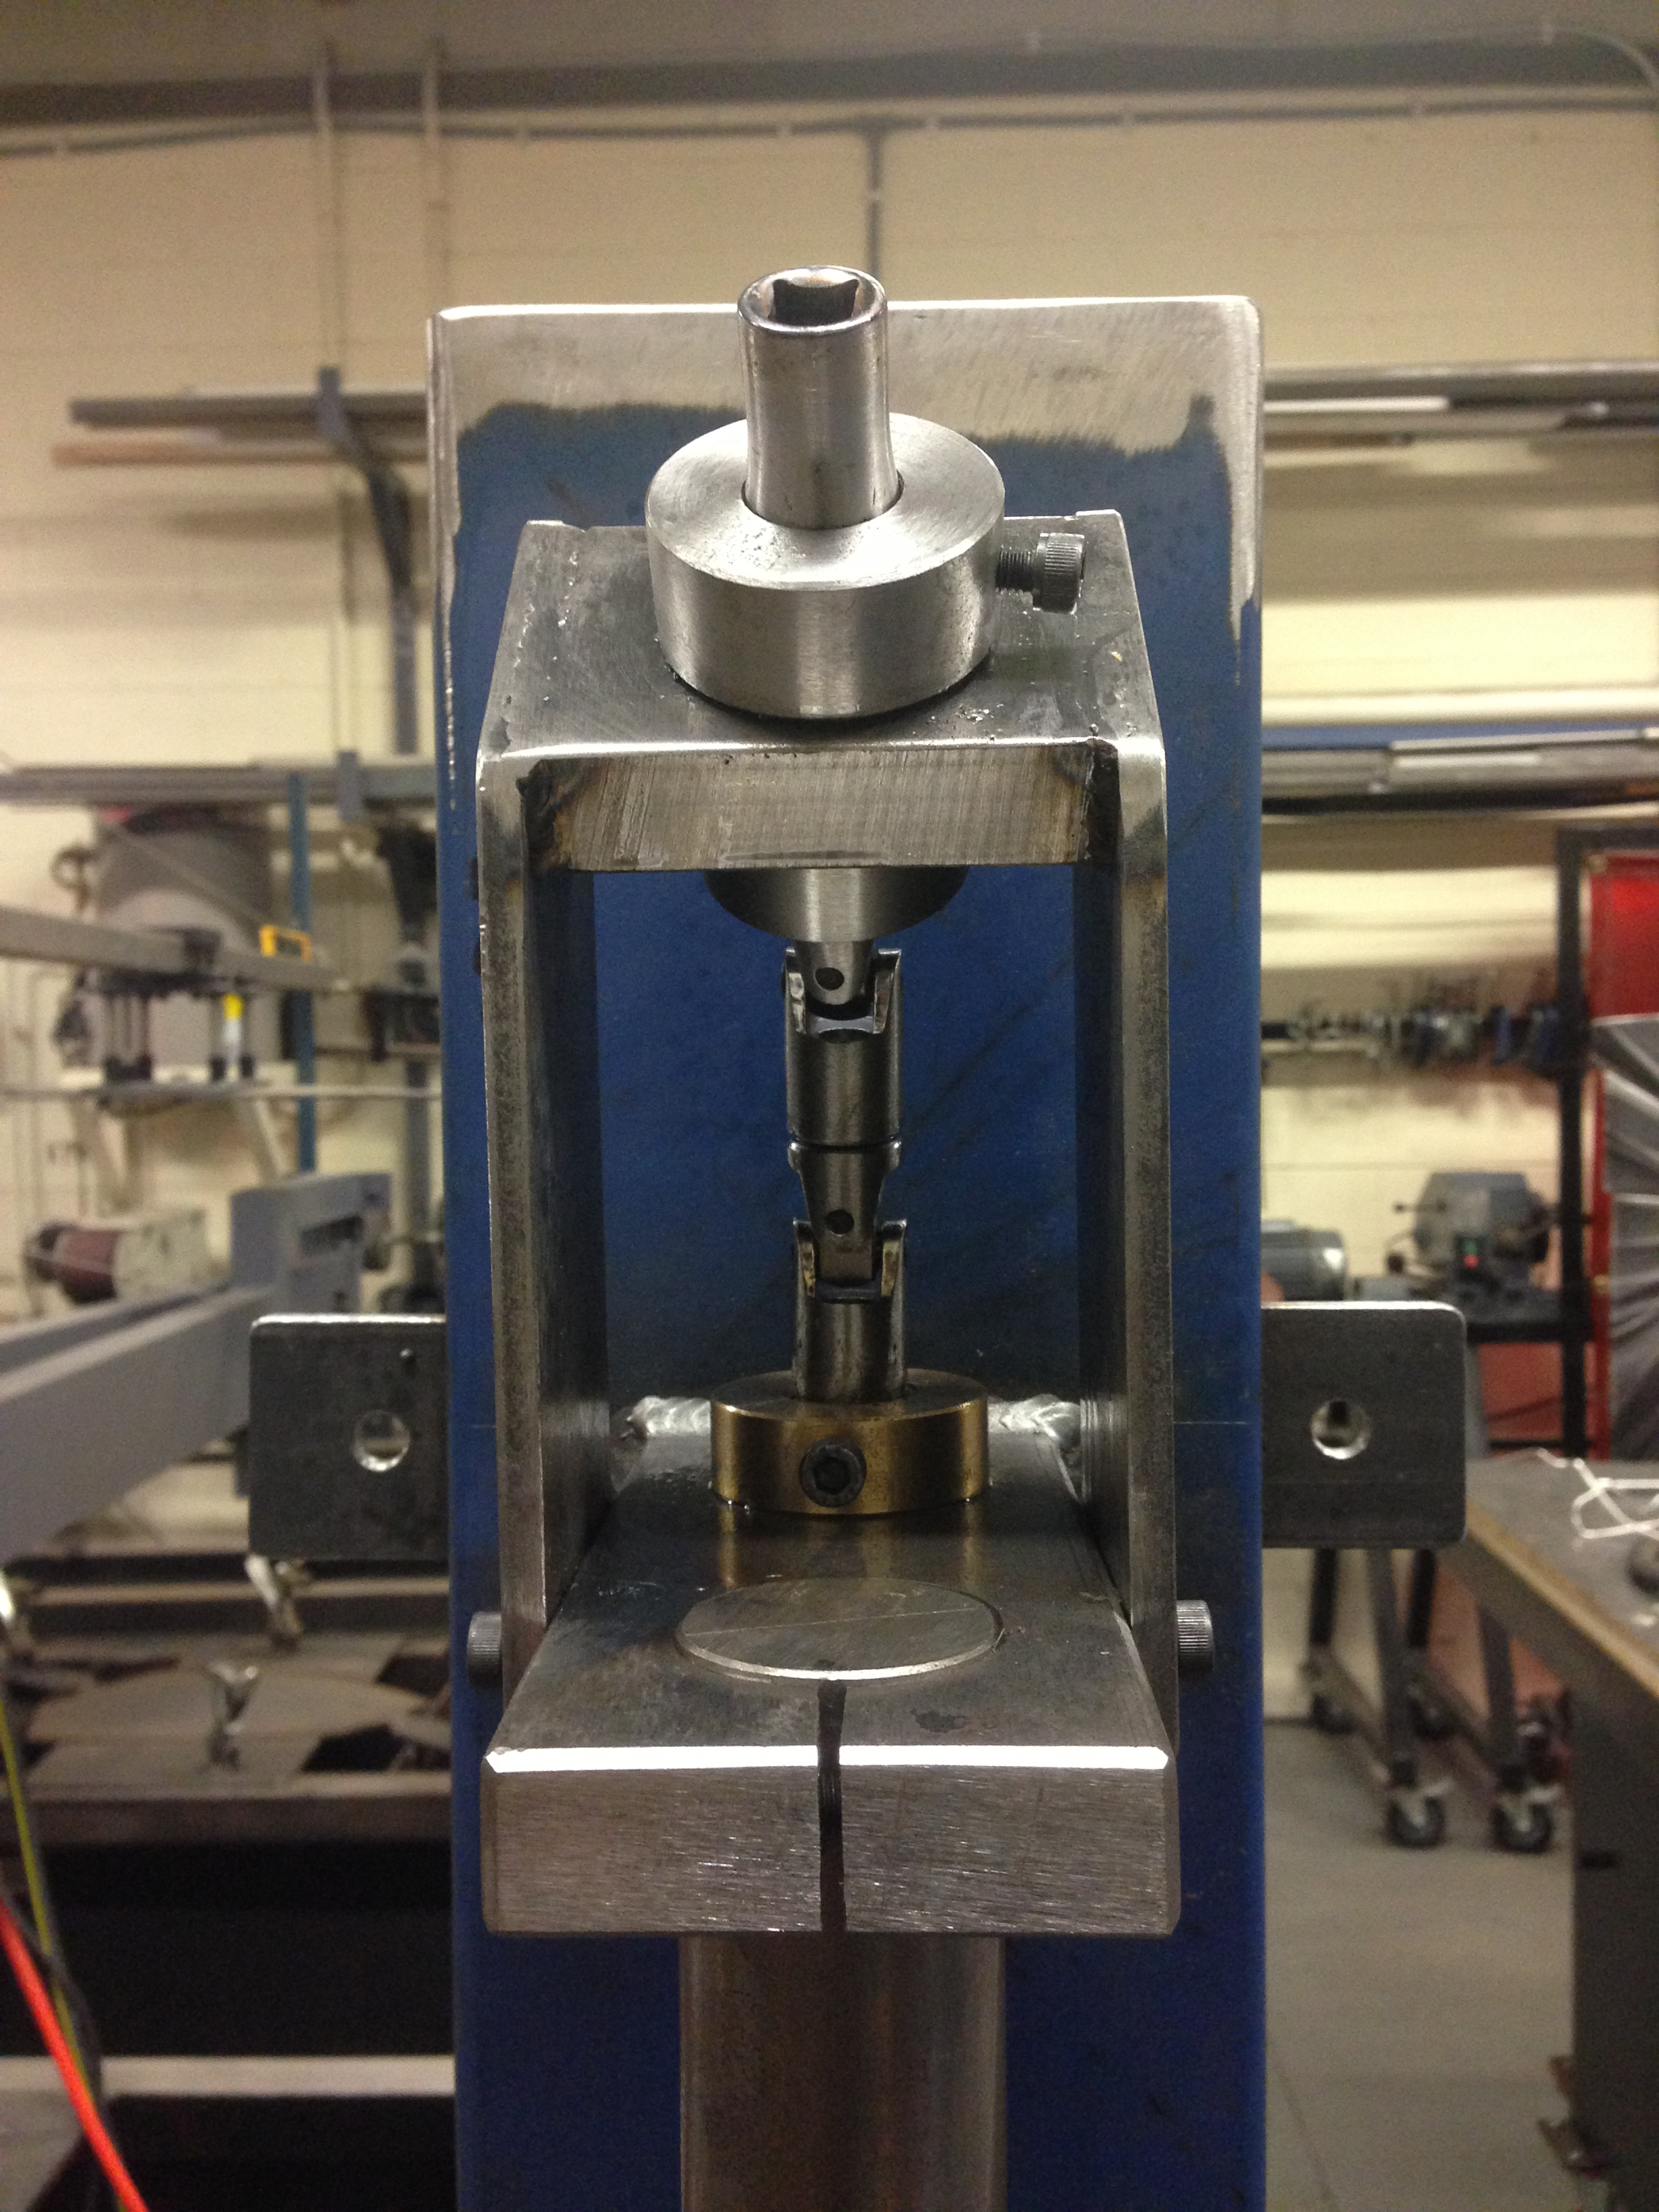 CLOSE UP OF HEIGHT ADJUSTMENT FOR GLASS GRINDING MACHINE